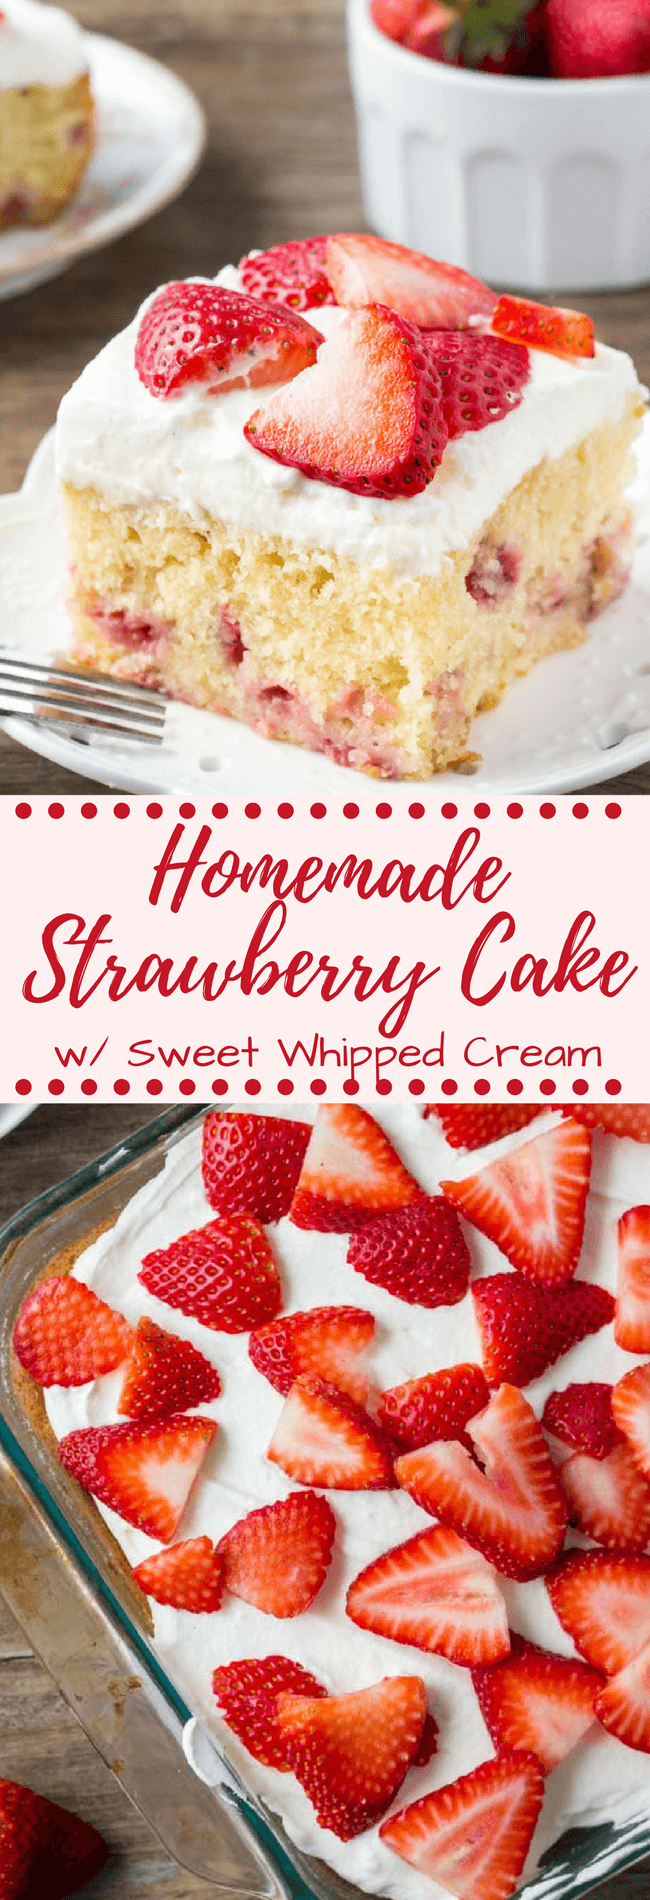 Homemade strawberry cake is super moist, with a delicious vanilla flavor and bursting with fresh berries. Then it's covered with a sweetened whipped cream topping and even more strawberries.#strawberries #strawberrycake #strawberryshortcake #cake #recipes #summer